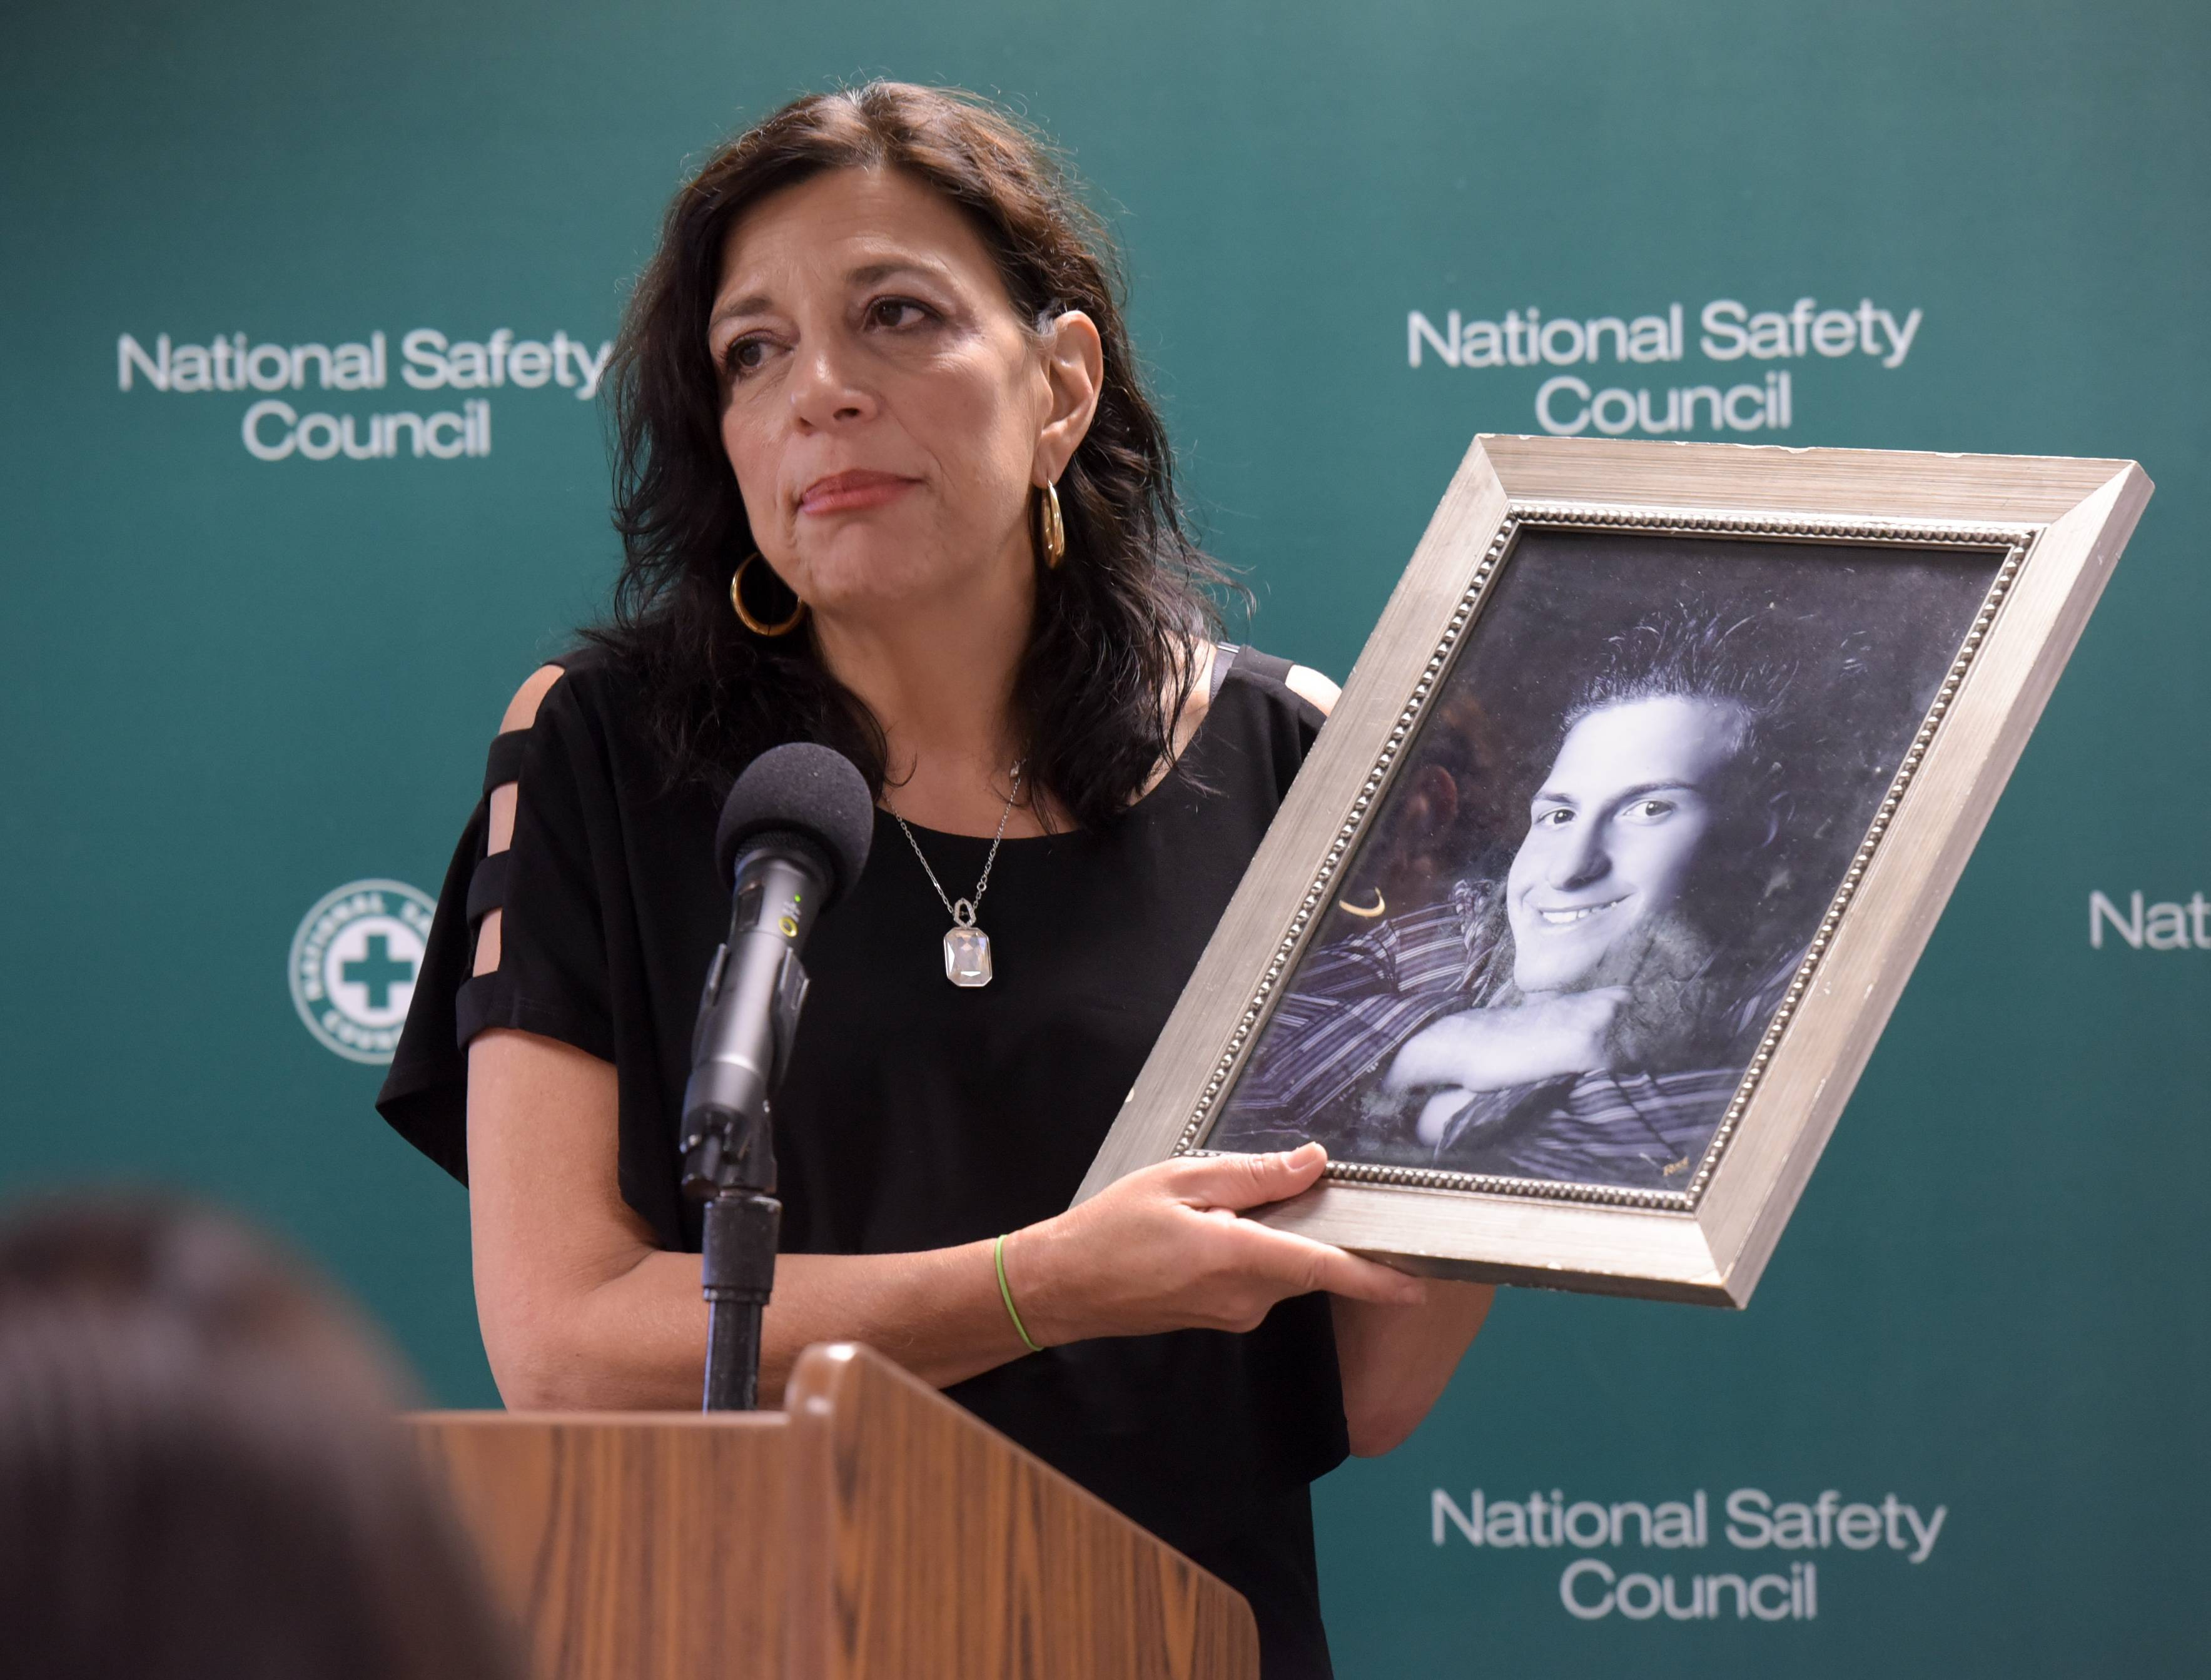 Mark Black/mblack@dailyherald.comFelicia Miceli of Medinah holds a photograph of her late son, Louie, who died of an overdose. She spoke during a Thursday news conference at the National Safety Council's headquarters in Itasca.